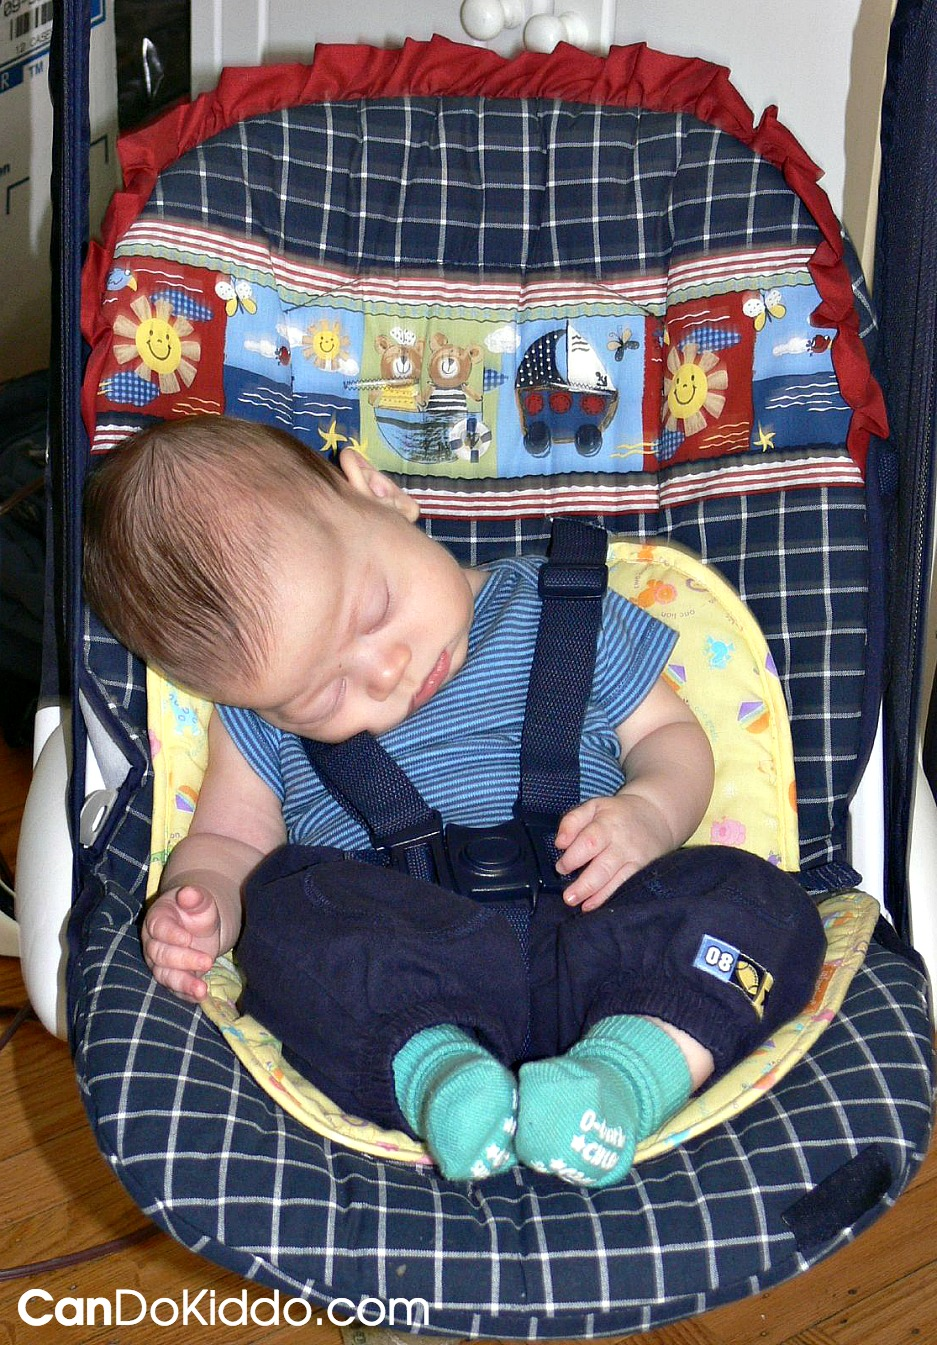 Safe healthy positioning in baby gear. Parent tips. CanDo Kiddo